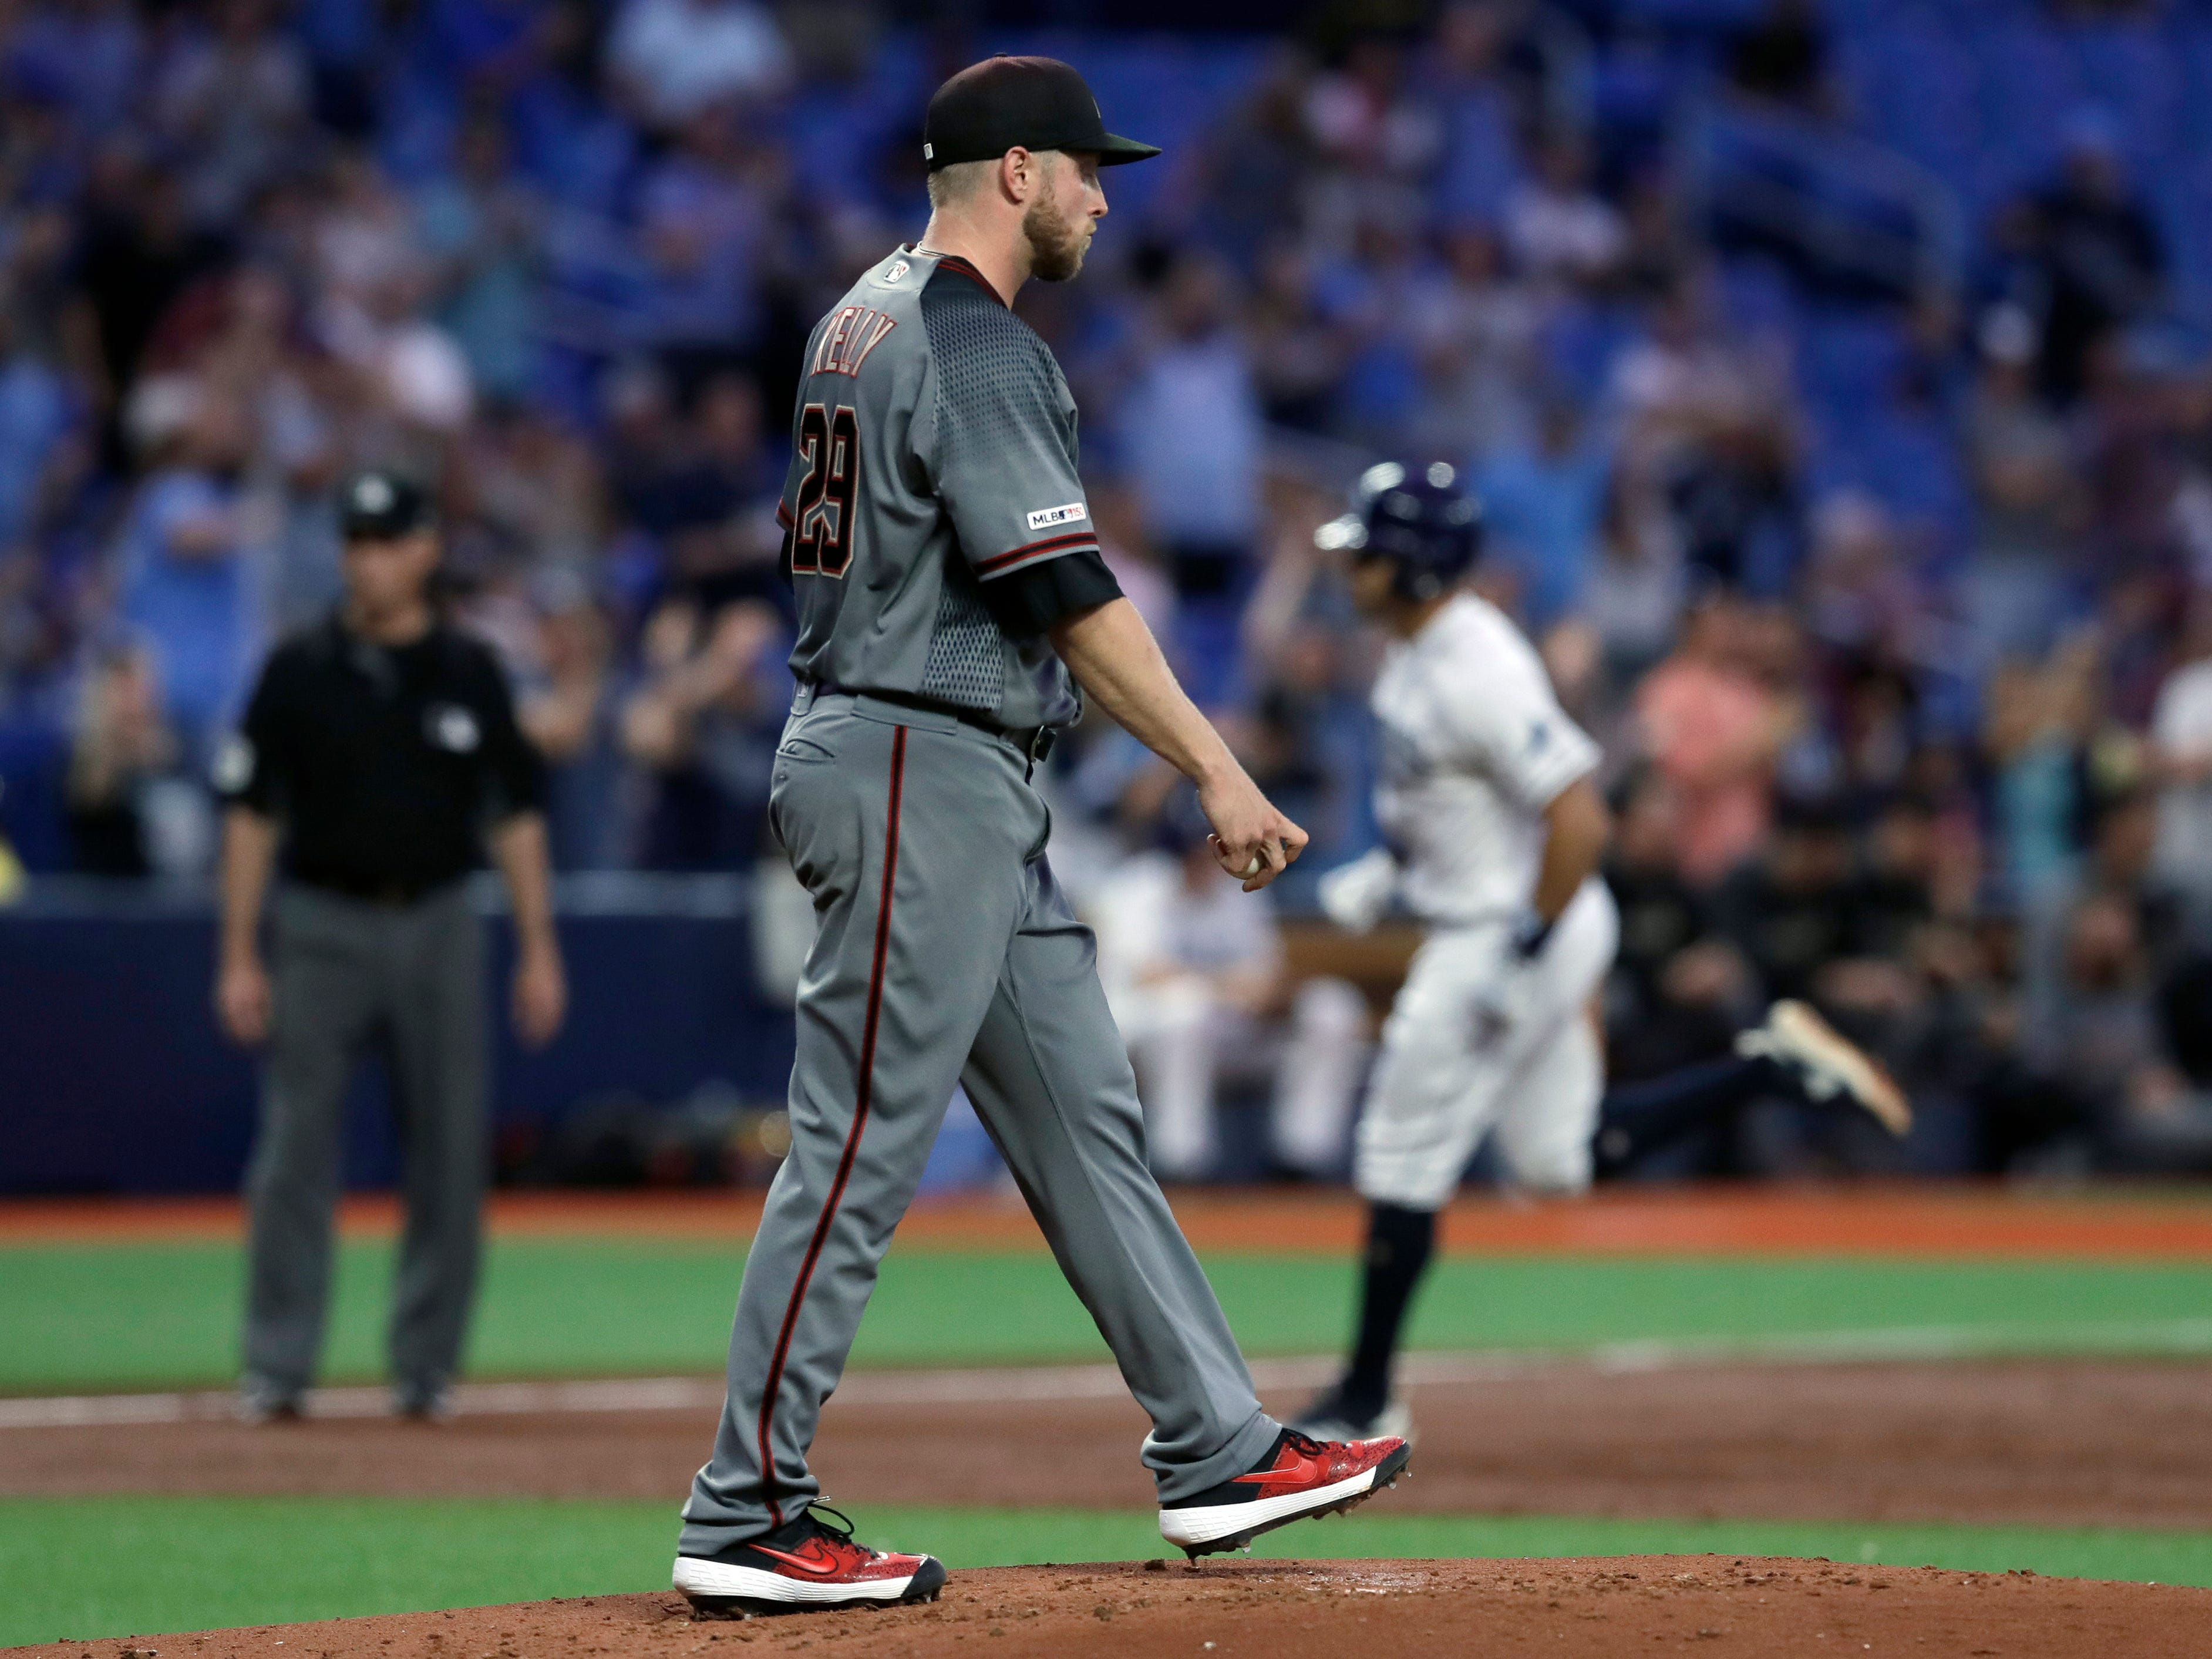 Arizona Diamondbacks starting pitcher Merrill Kelly, foreground, walks back to the mound as Tampa Bay Rays' Tommy Pham, back right, runs around the bases after Pham hit a grand slam during the second inning of a baseball game Monday, May 6, 2019, in St. Petersburg, Fla. (AP Photo/Chris O'Meara)